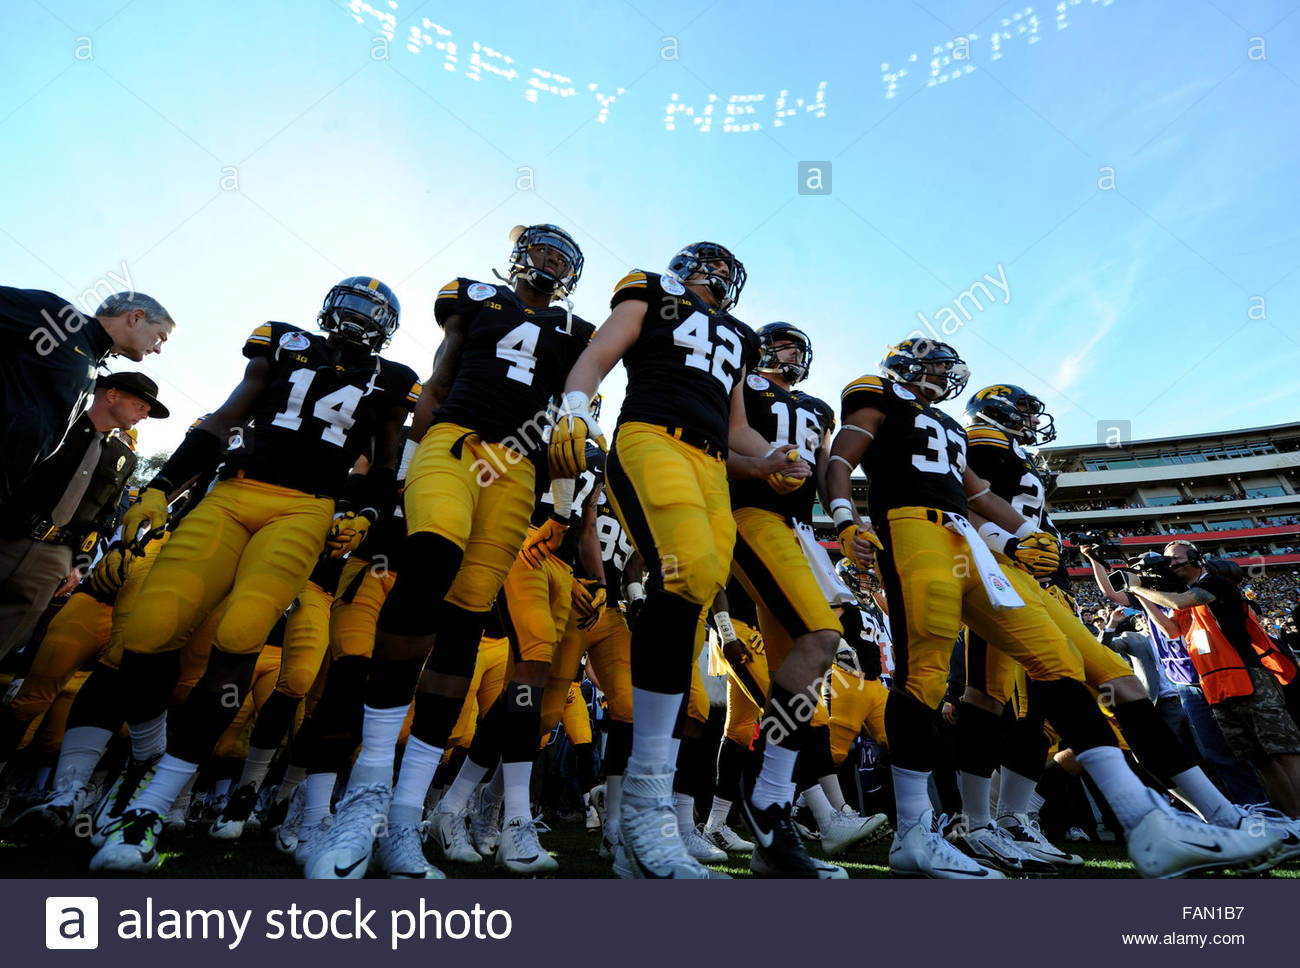 Pasadena, California, USA. 01st Jan, 2016. Iowa enters the field prior to the 102nd Rose Bowl game against Stanford. Stock Photo